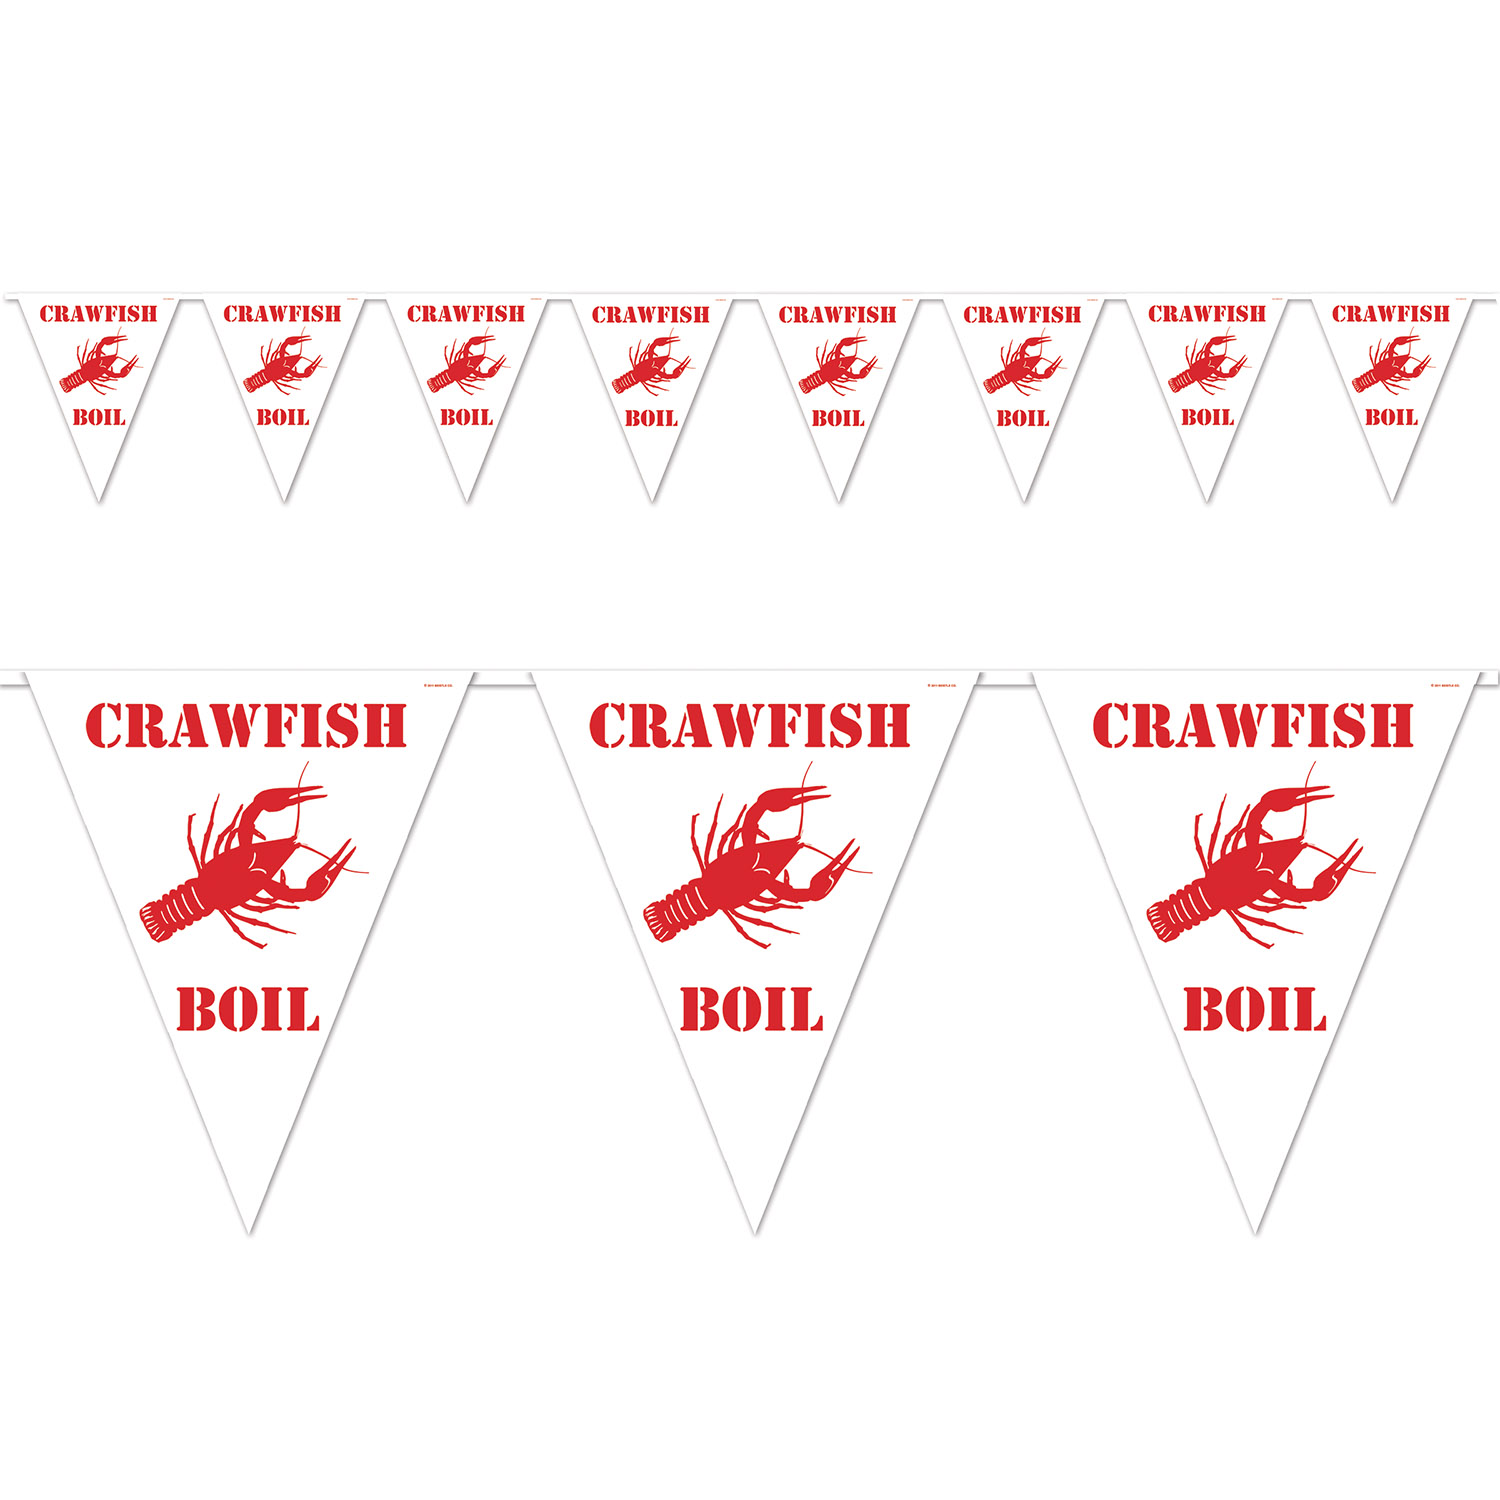 Crawfish Boil Pennant Banner (Pack of 12) Crawfish Boil Pennant Banner, decoration, mardi gras, crawfish, wholesale, inexpensive, bulk